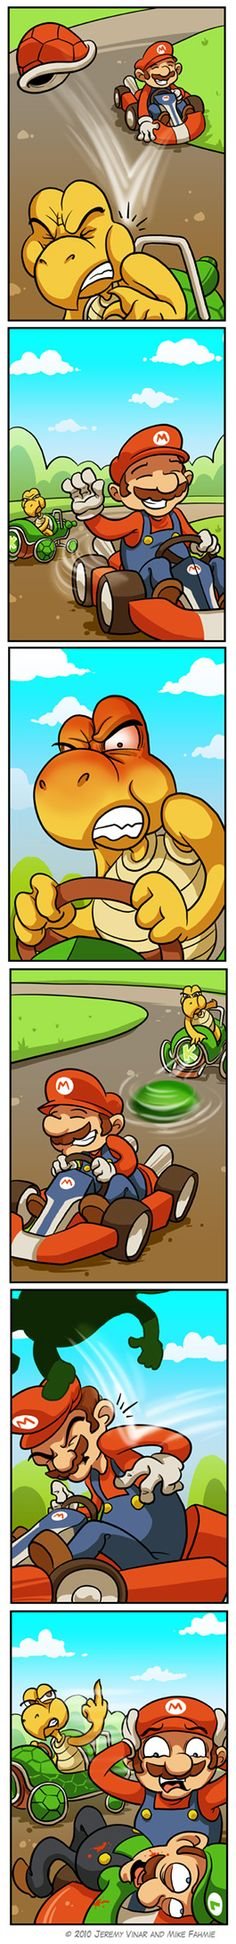 Take that motherfu***r! With Green Koopa, Luigi (corpse) and Mario.